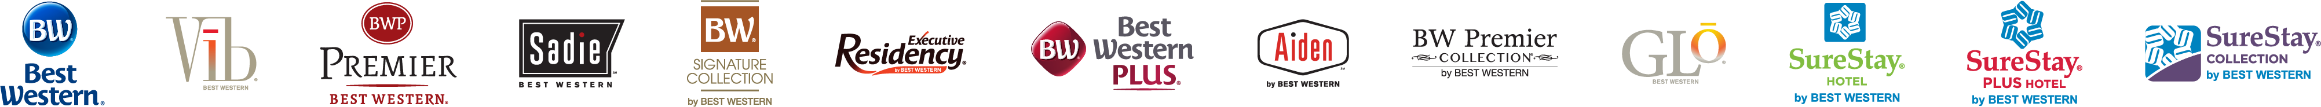 Best Western Icons